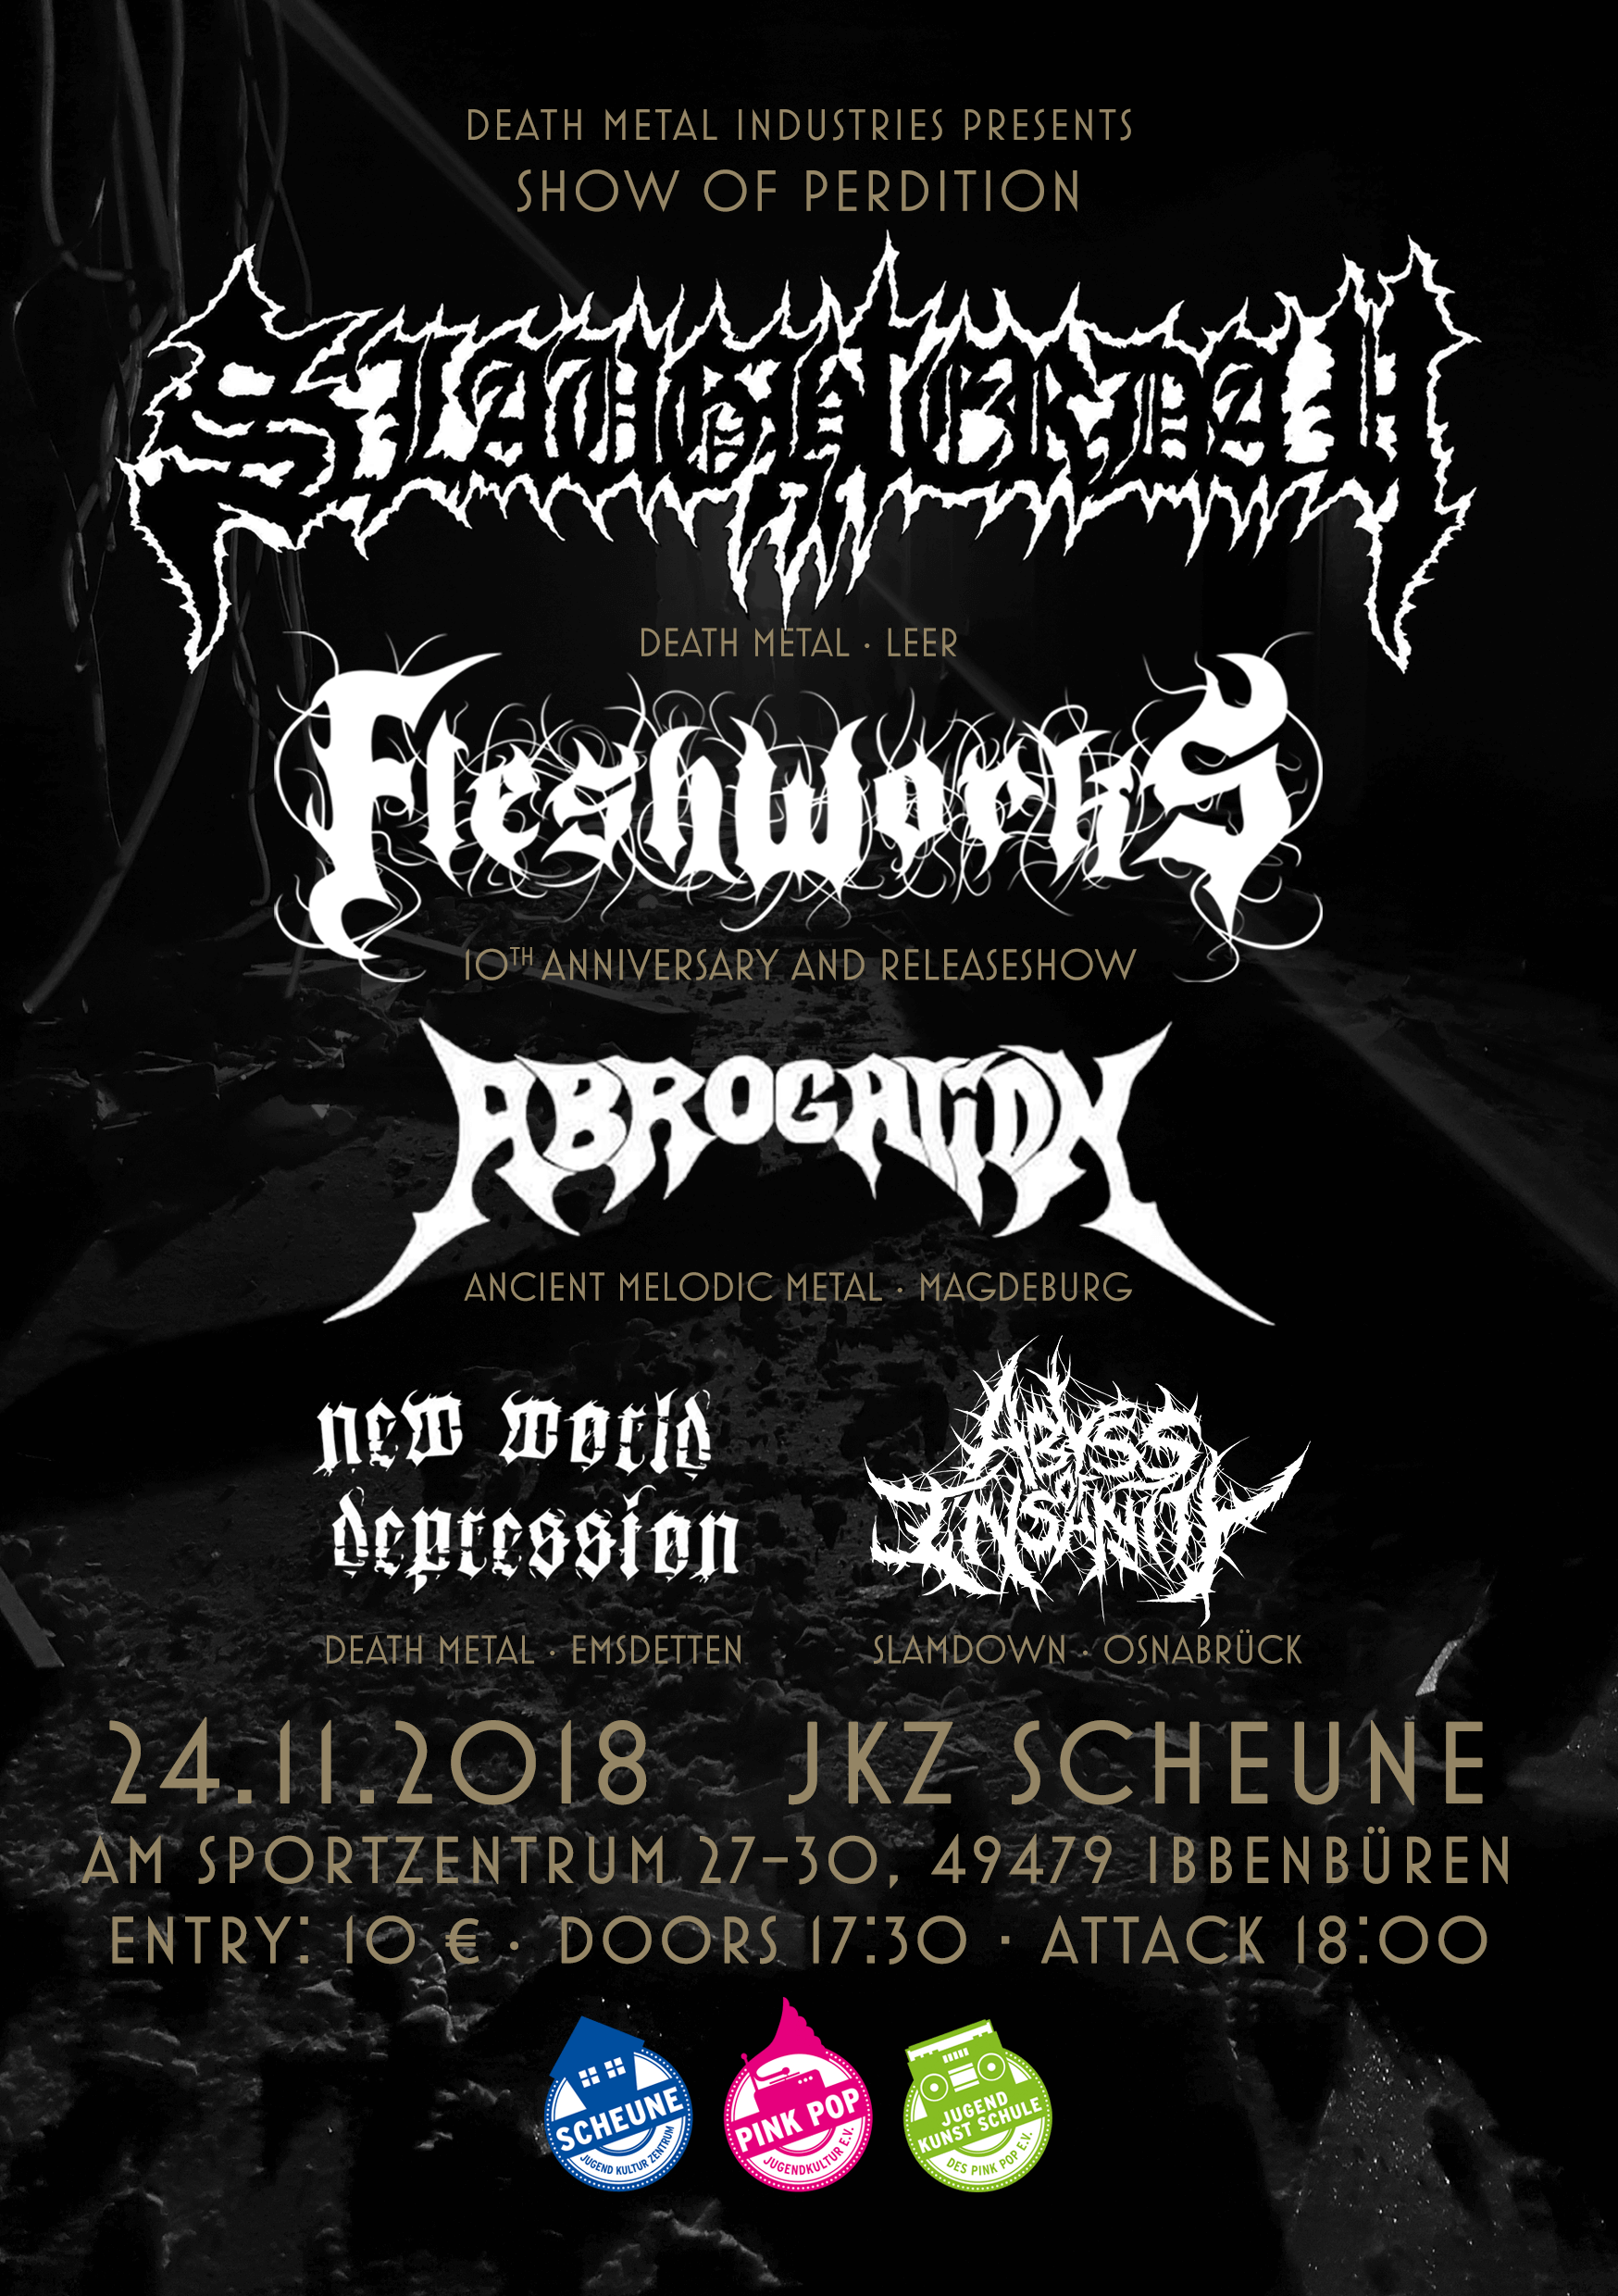 fleshworks, 10th anniversary and releaseshow, slaughterday, abrogation, new world depression, abyss of insanity, ibbenbueren, scheune